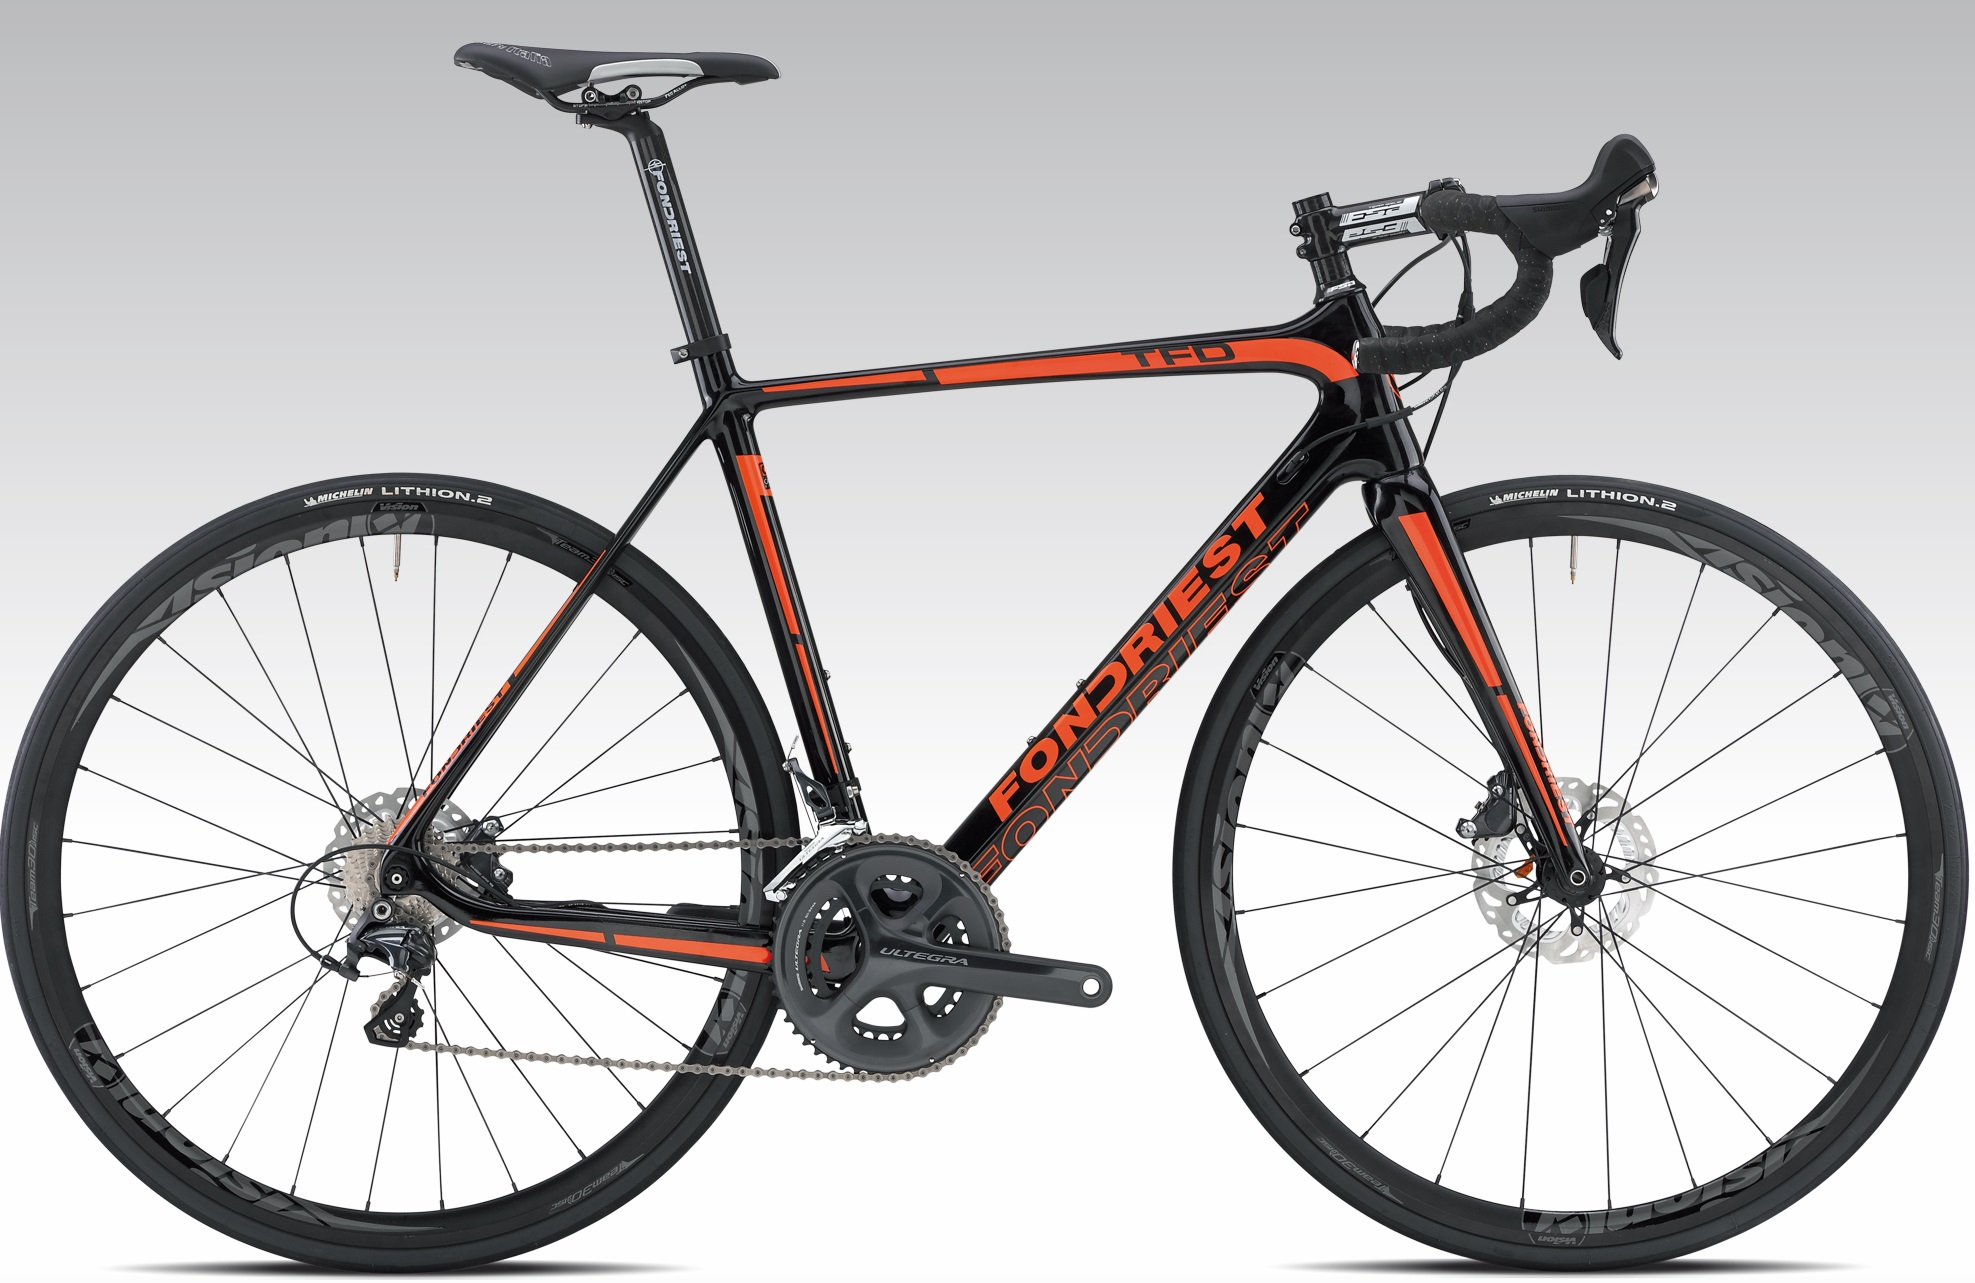 2016 Fondriest TFD orange black disc ultegraneuroticarnutz2016 Fondriest TFD orange black disc ultegra2016 Somec Genesi disc orange black ultegra